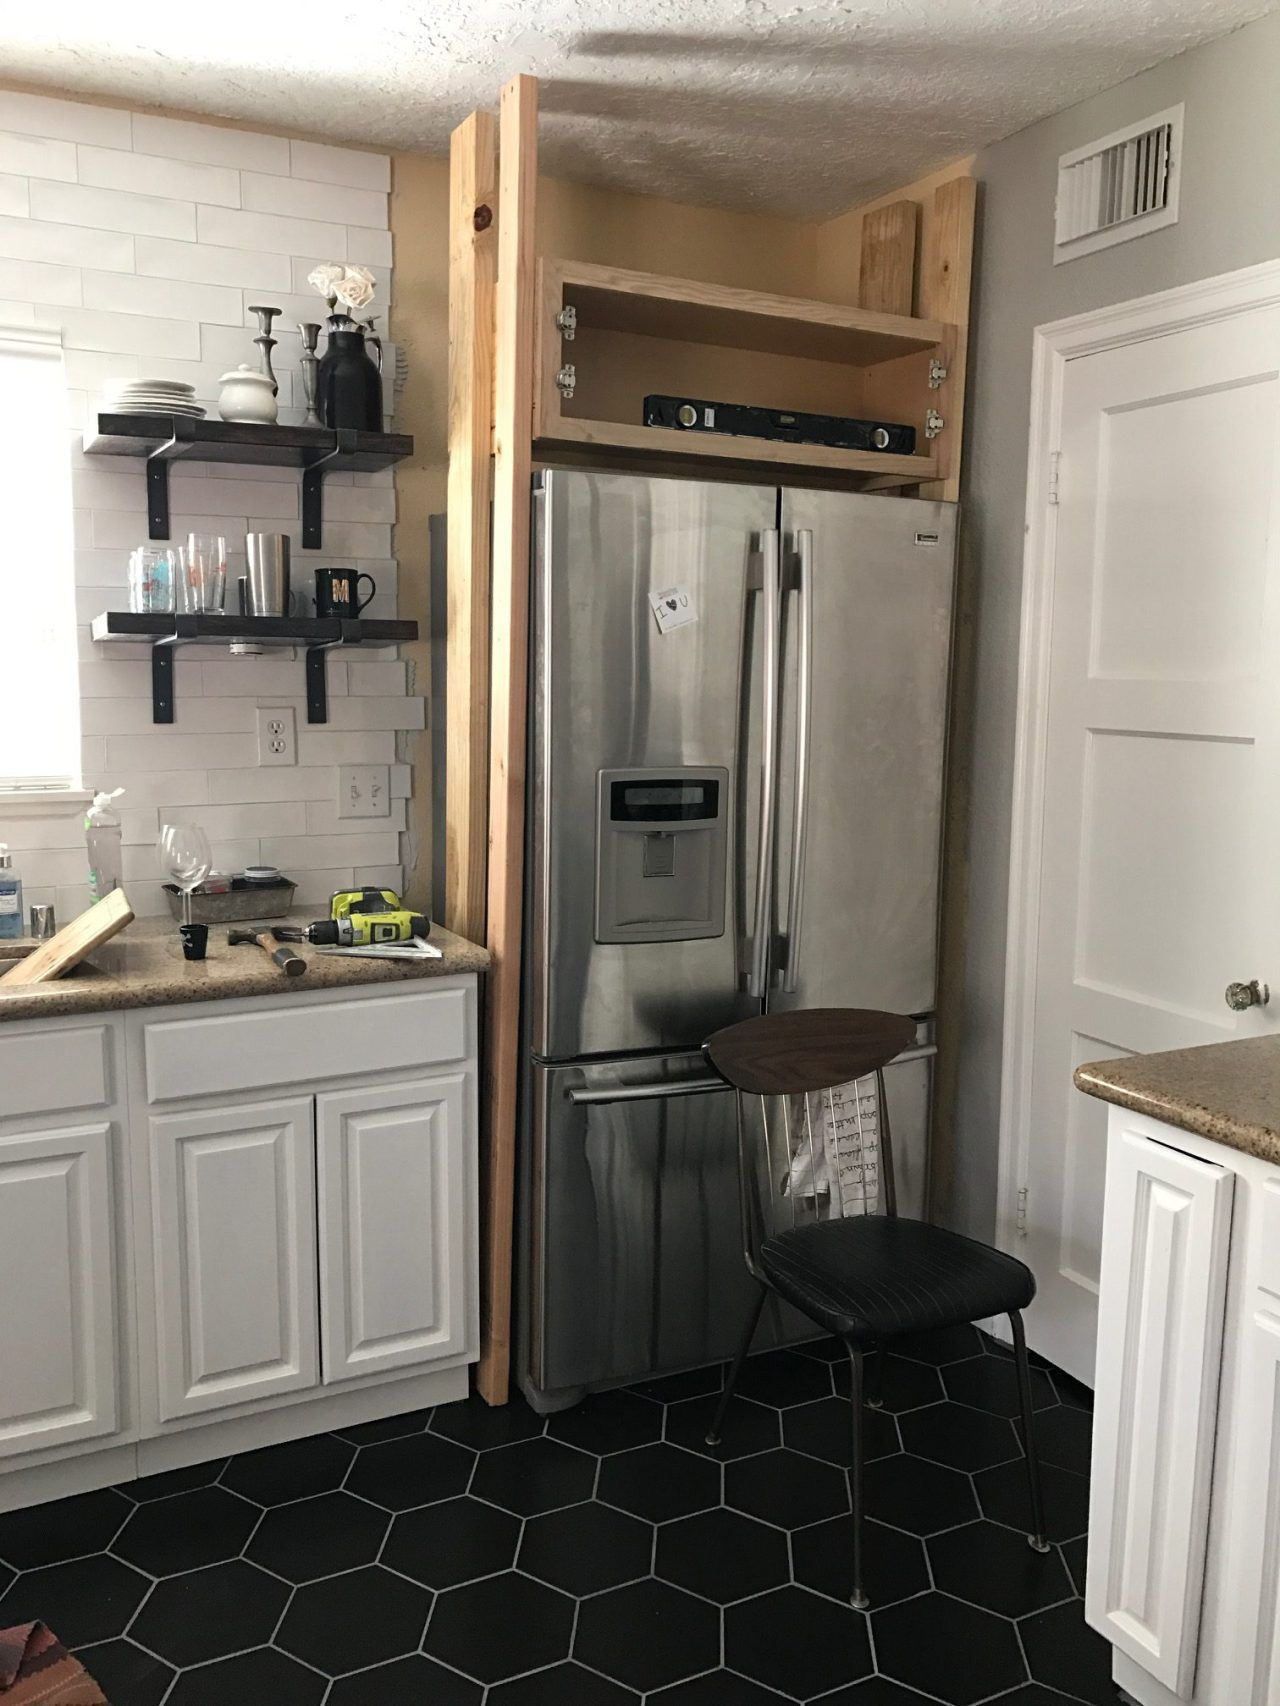 We've got the Fridge Surrounded   Small american kitchens ...